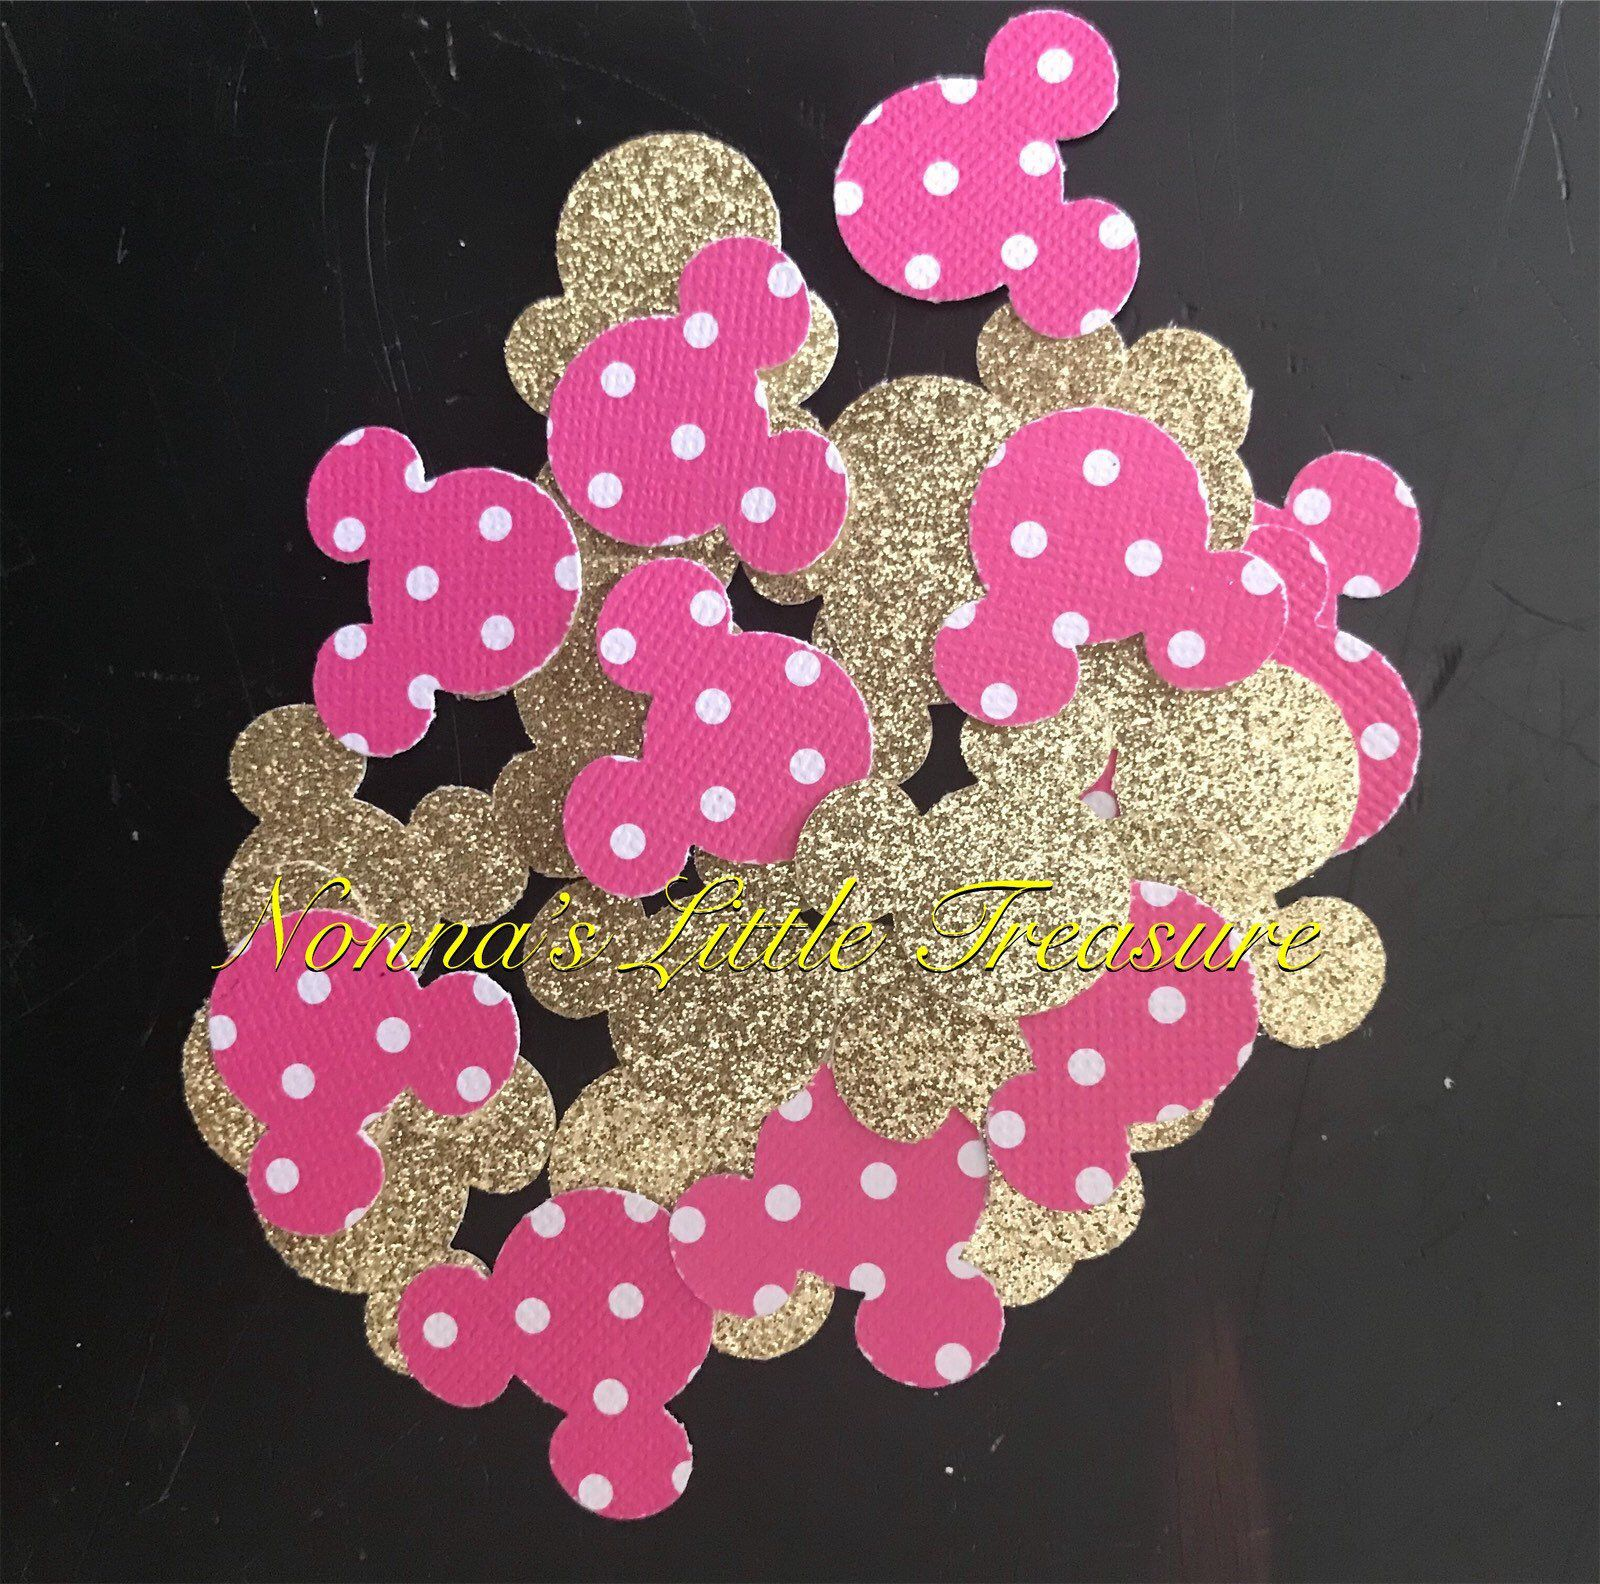 Minnie Mouse Confetti,Hot Pink Polka Dots And Gold Minnie